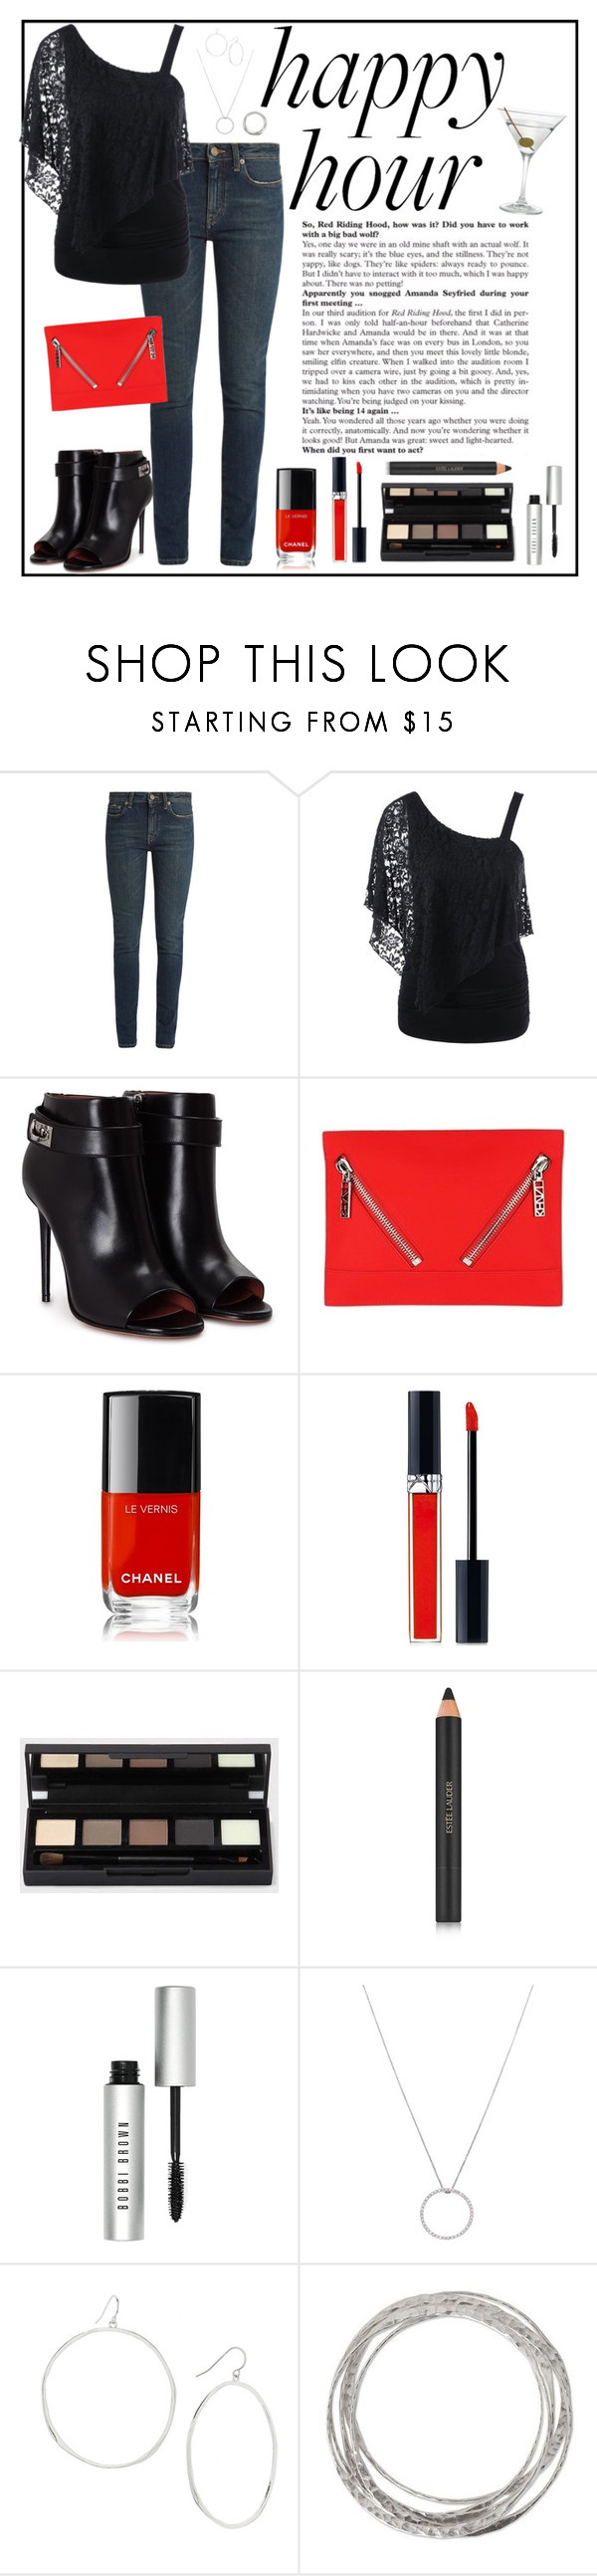 """""""Happy Hour"""" by sew-inspired ❤ liked on Polyvore featuring Yves Saint Laurent, Givenchy, Kenzo, Chanel, Christian Dior, Estée Lauder, Bobbi Brown Cosmetics, Roberto Coin, Gorjana and NOVICA"""